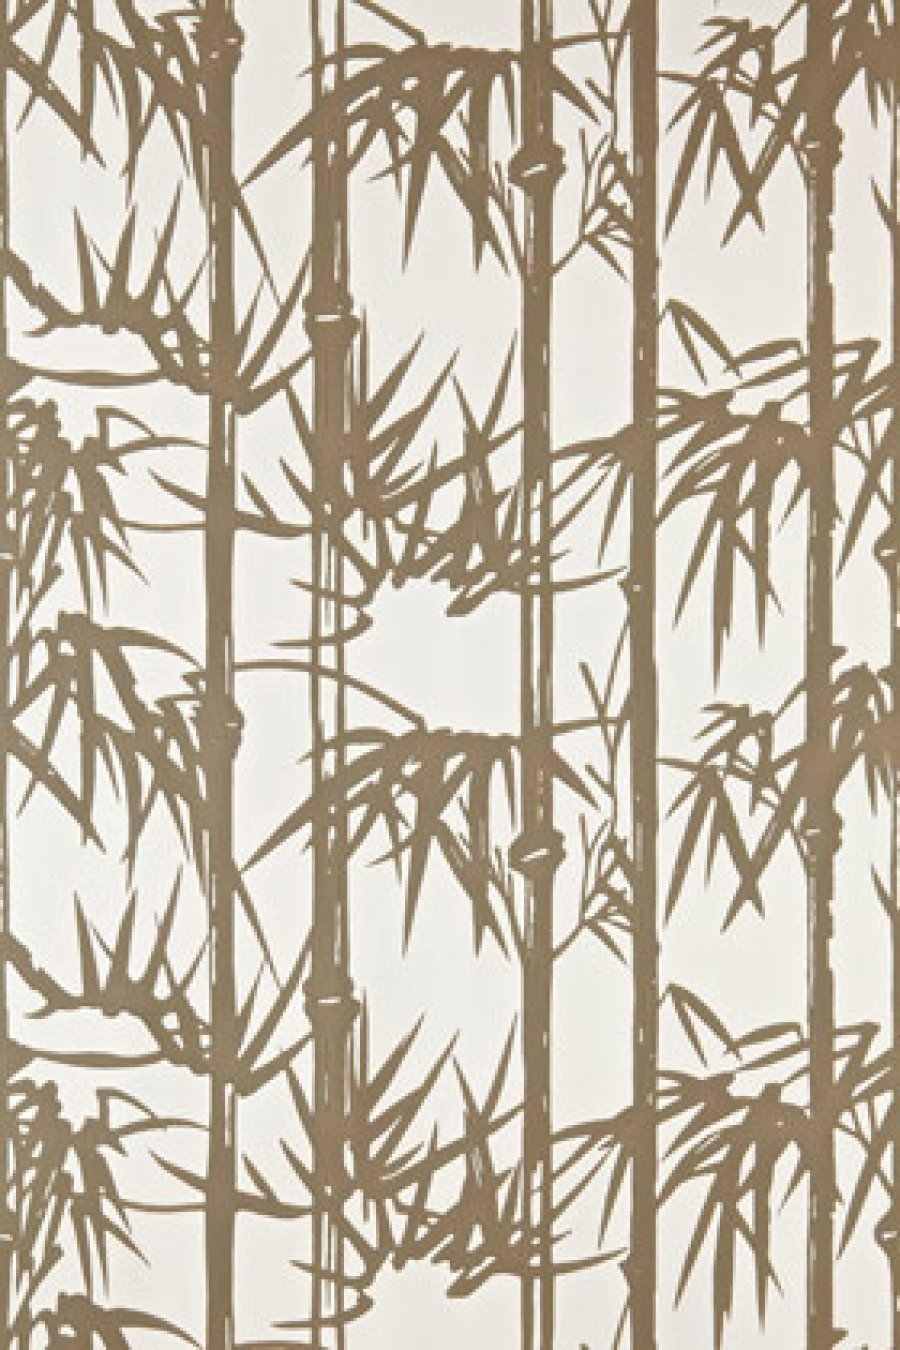 Farrow and ball bamboo bp 2113 wallpaper alexander interiors designer fabric wallpaper and home - Farrow and ball papier peint ...